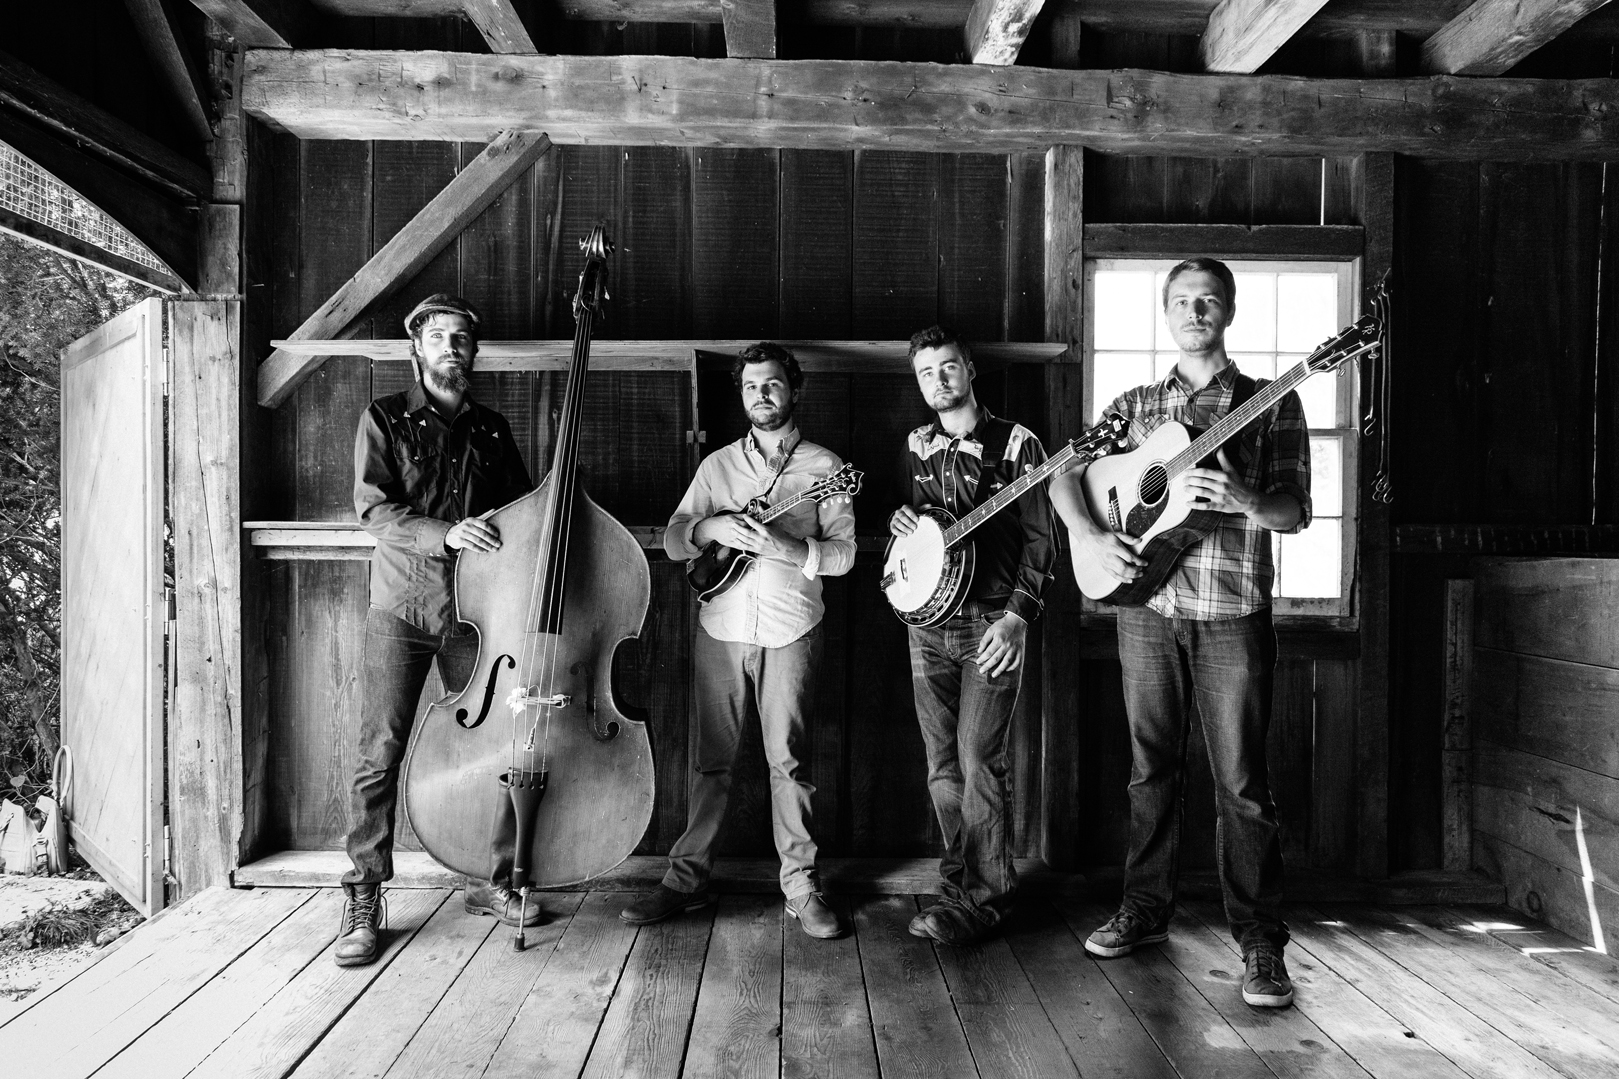 Scintillating North American bluegrass from The Slocan Ramblers